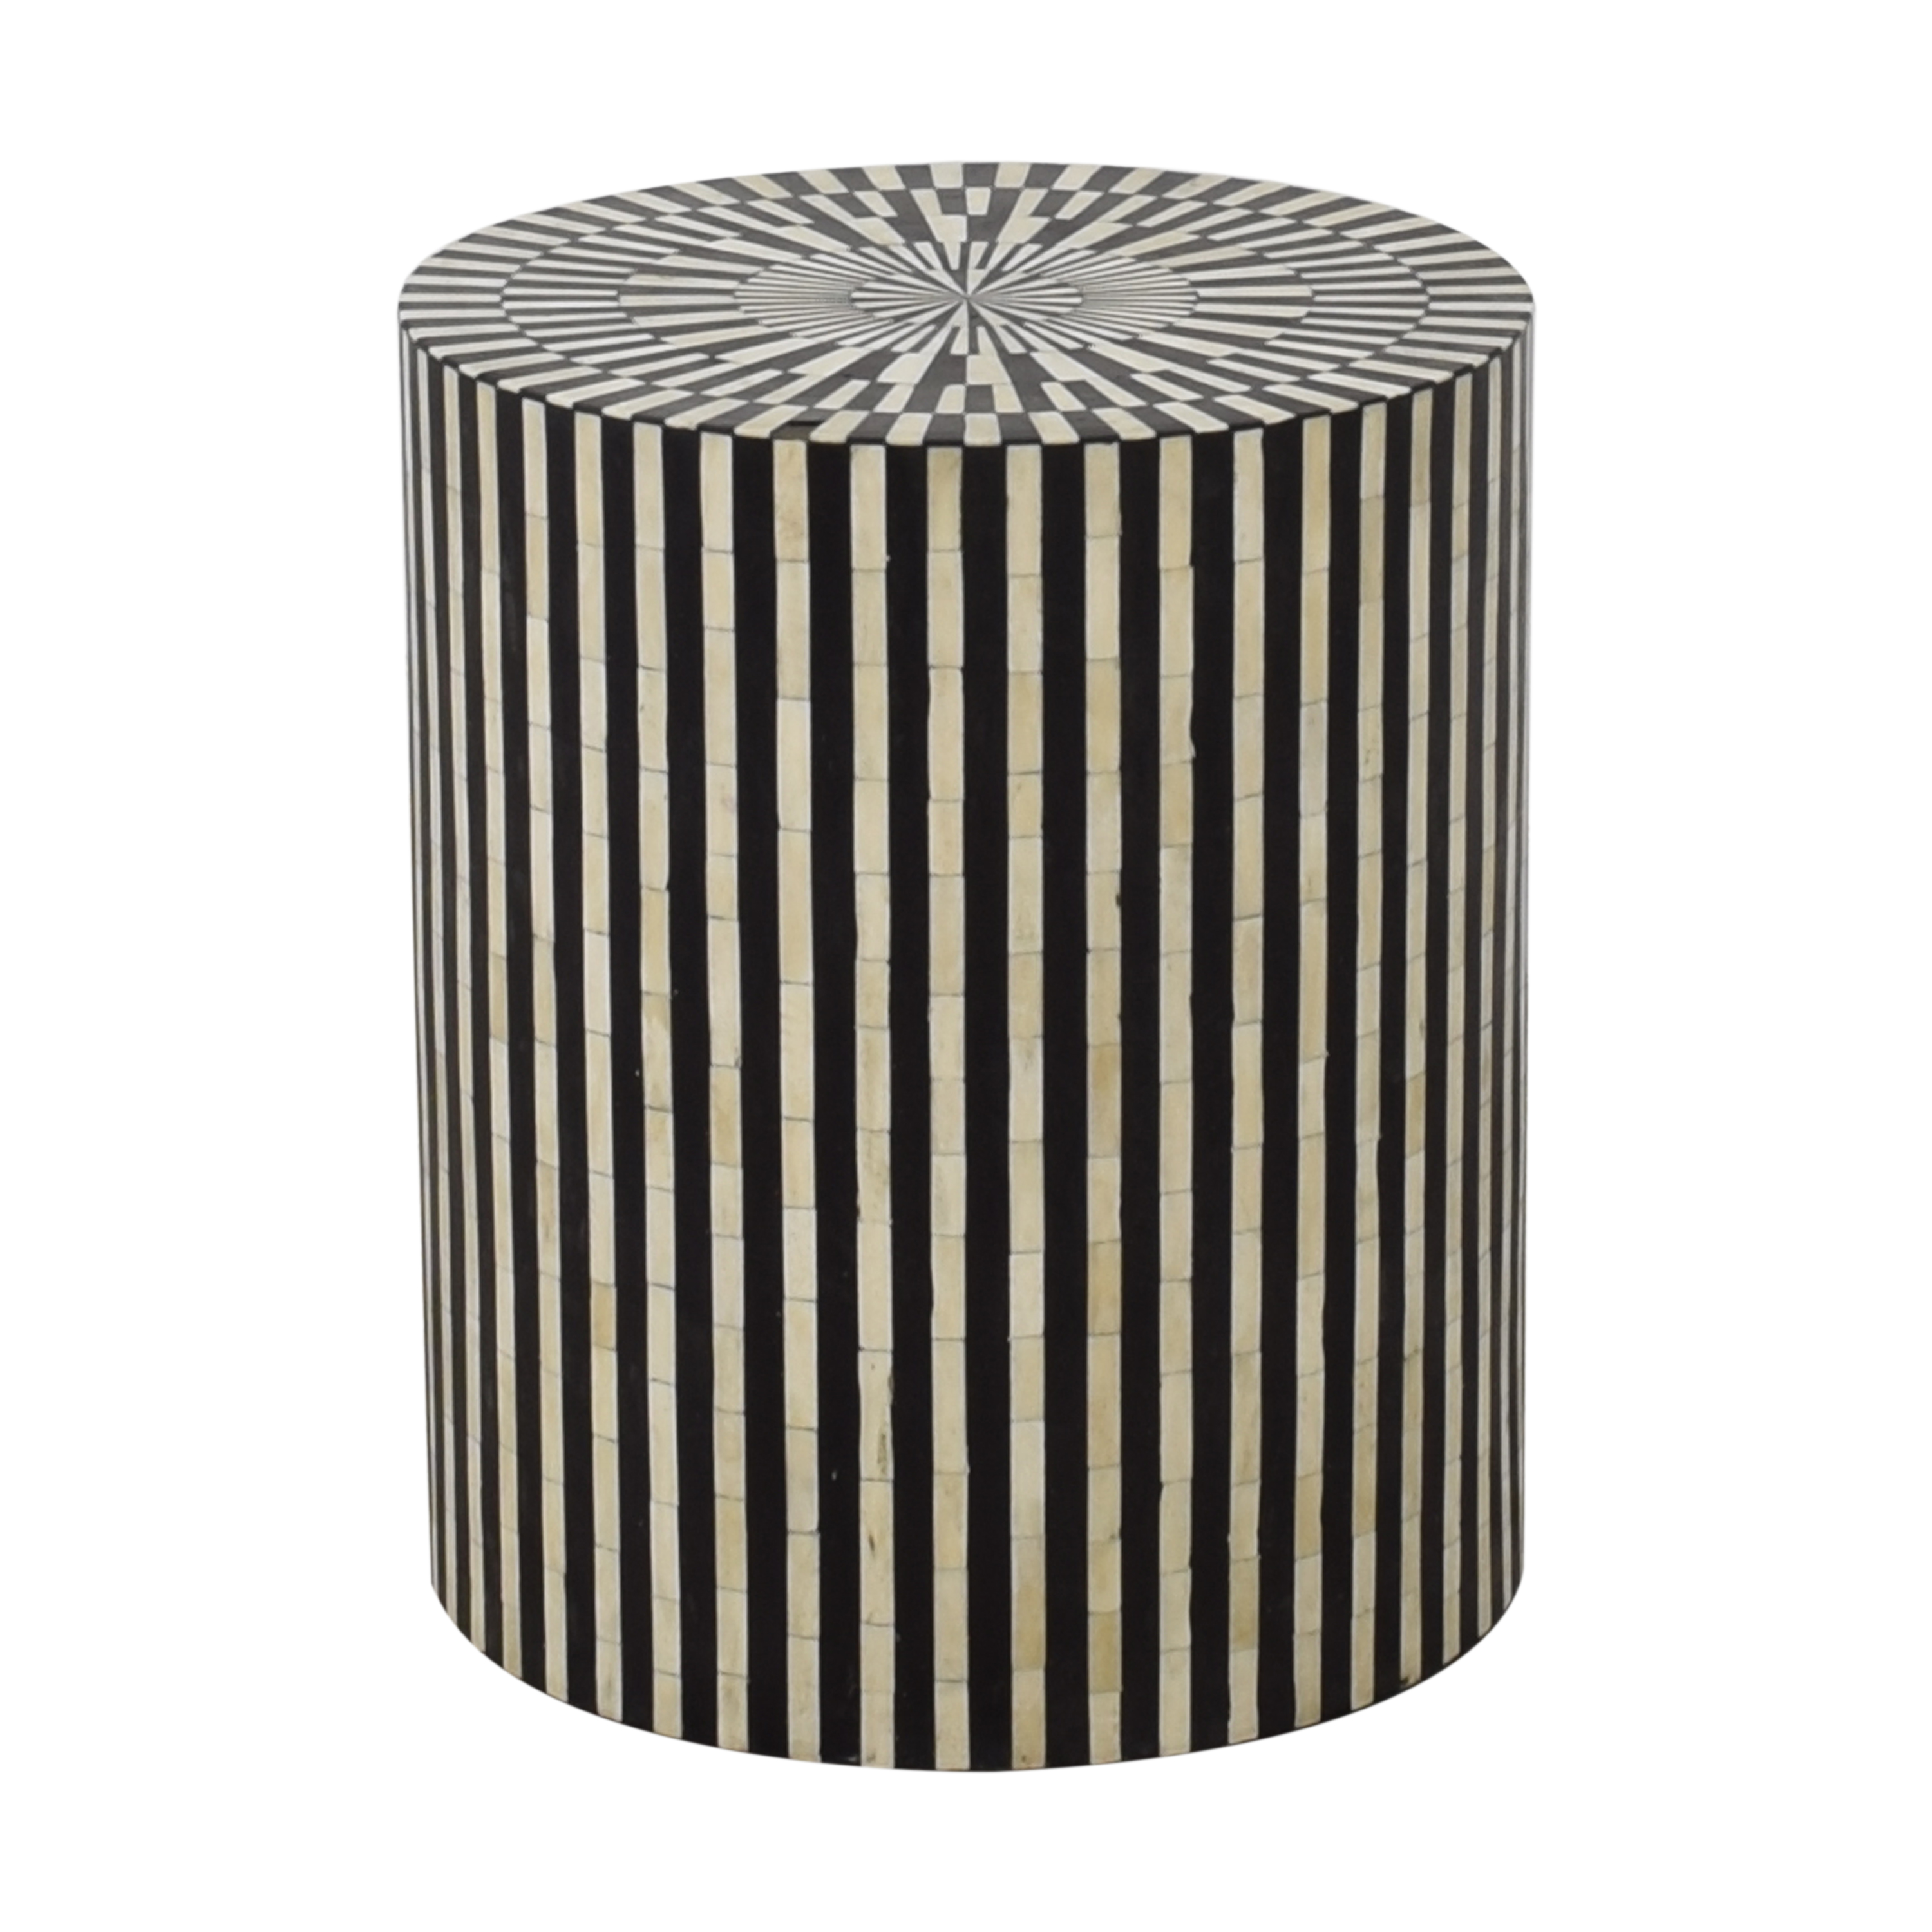 Anthropologie Anthropologie Rounded Inlay Drum Side Table second hand